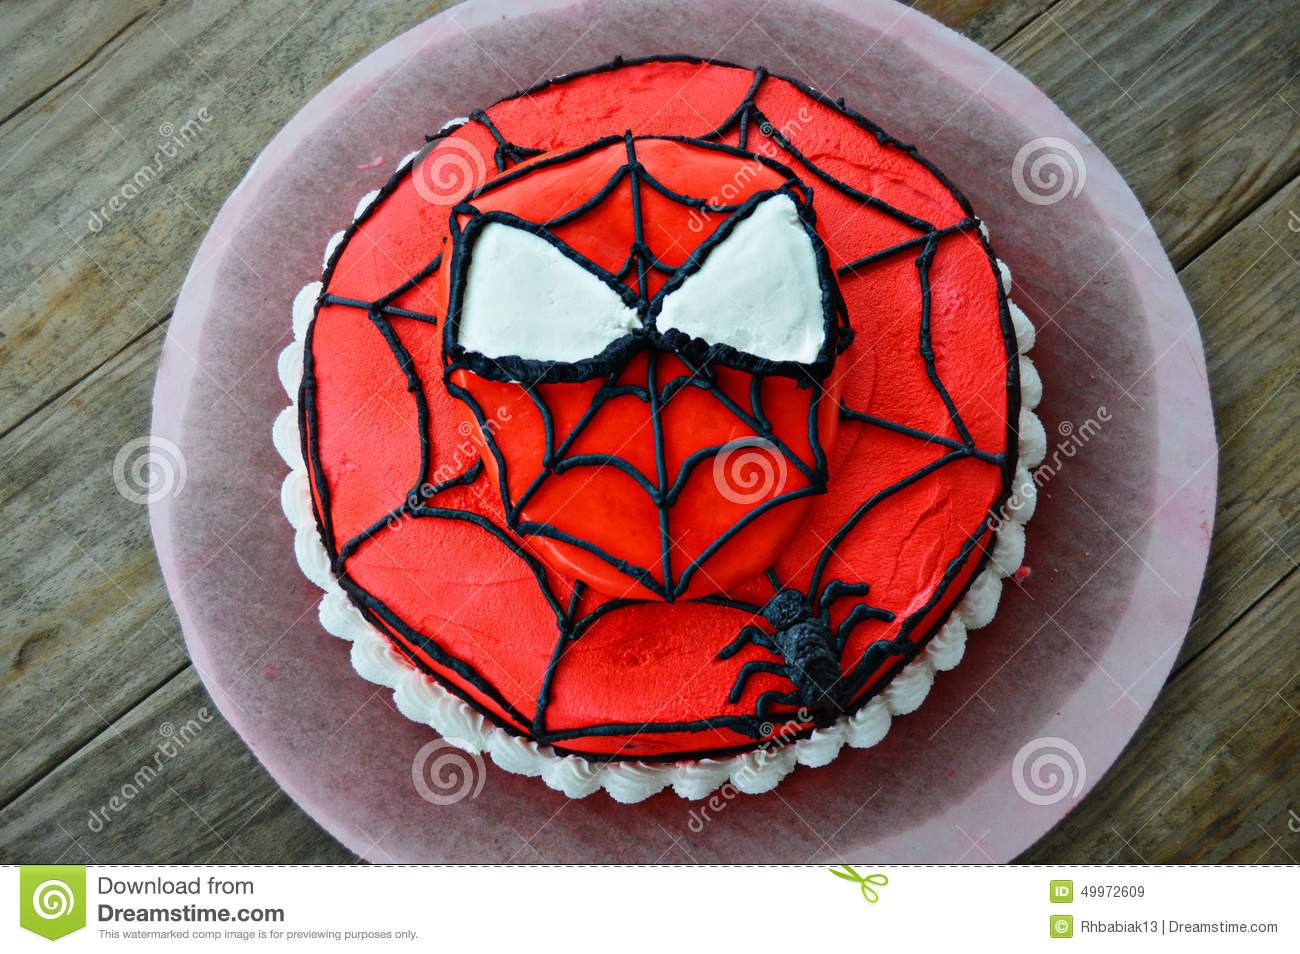 Amazing Spiderman Decorated Cake Editorial Stock Image